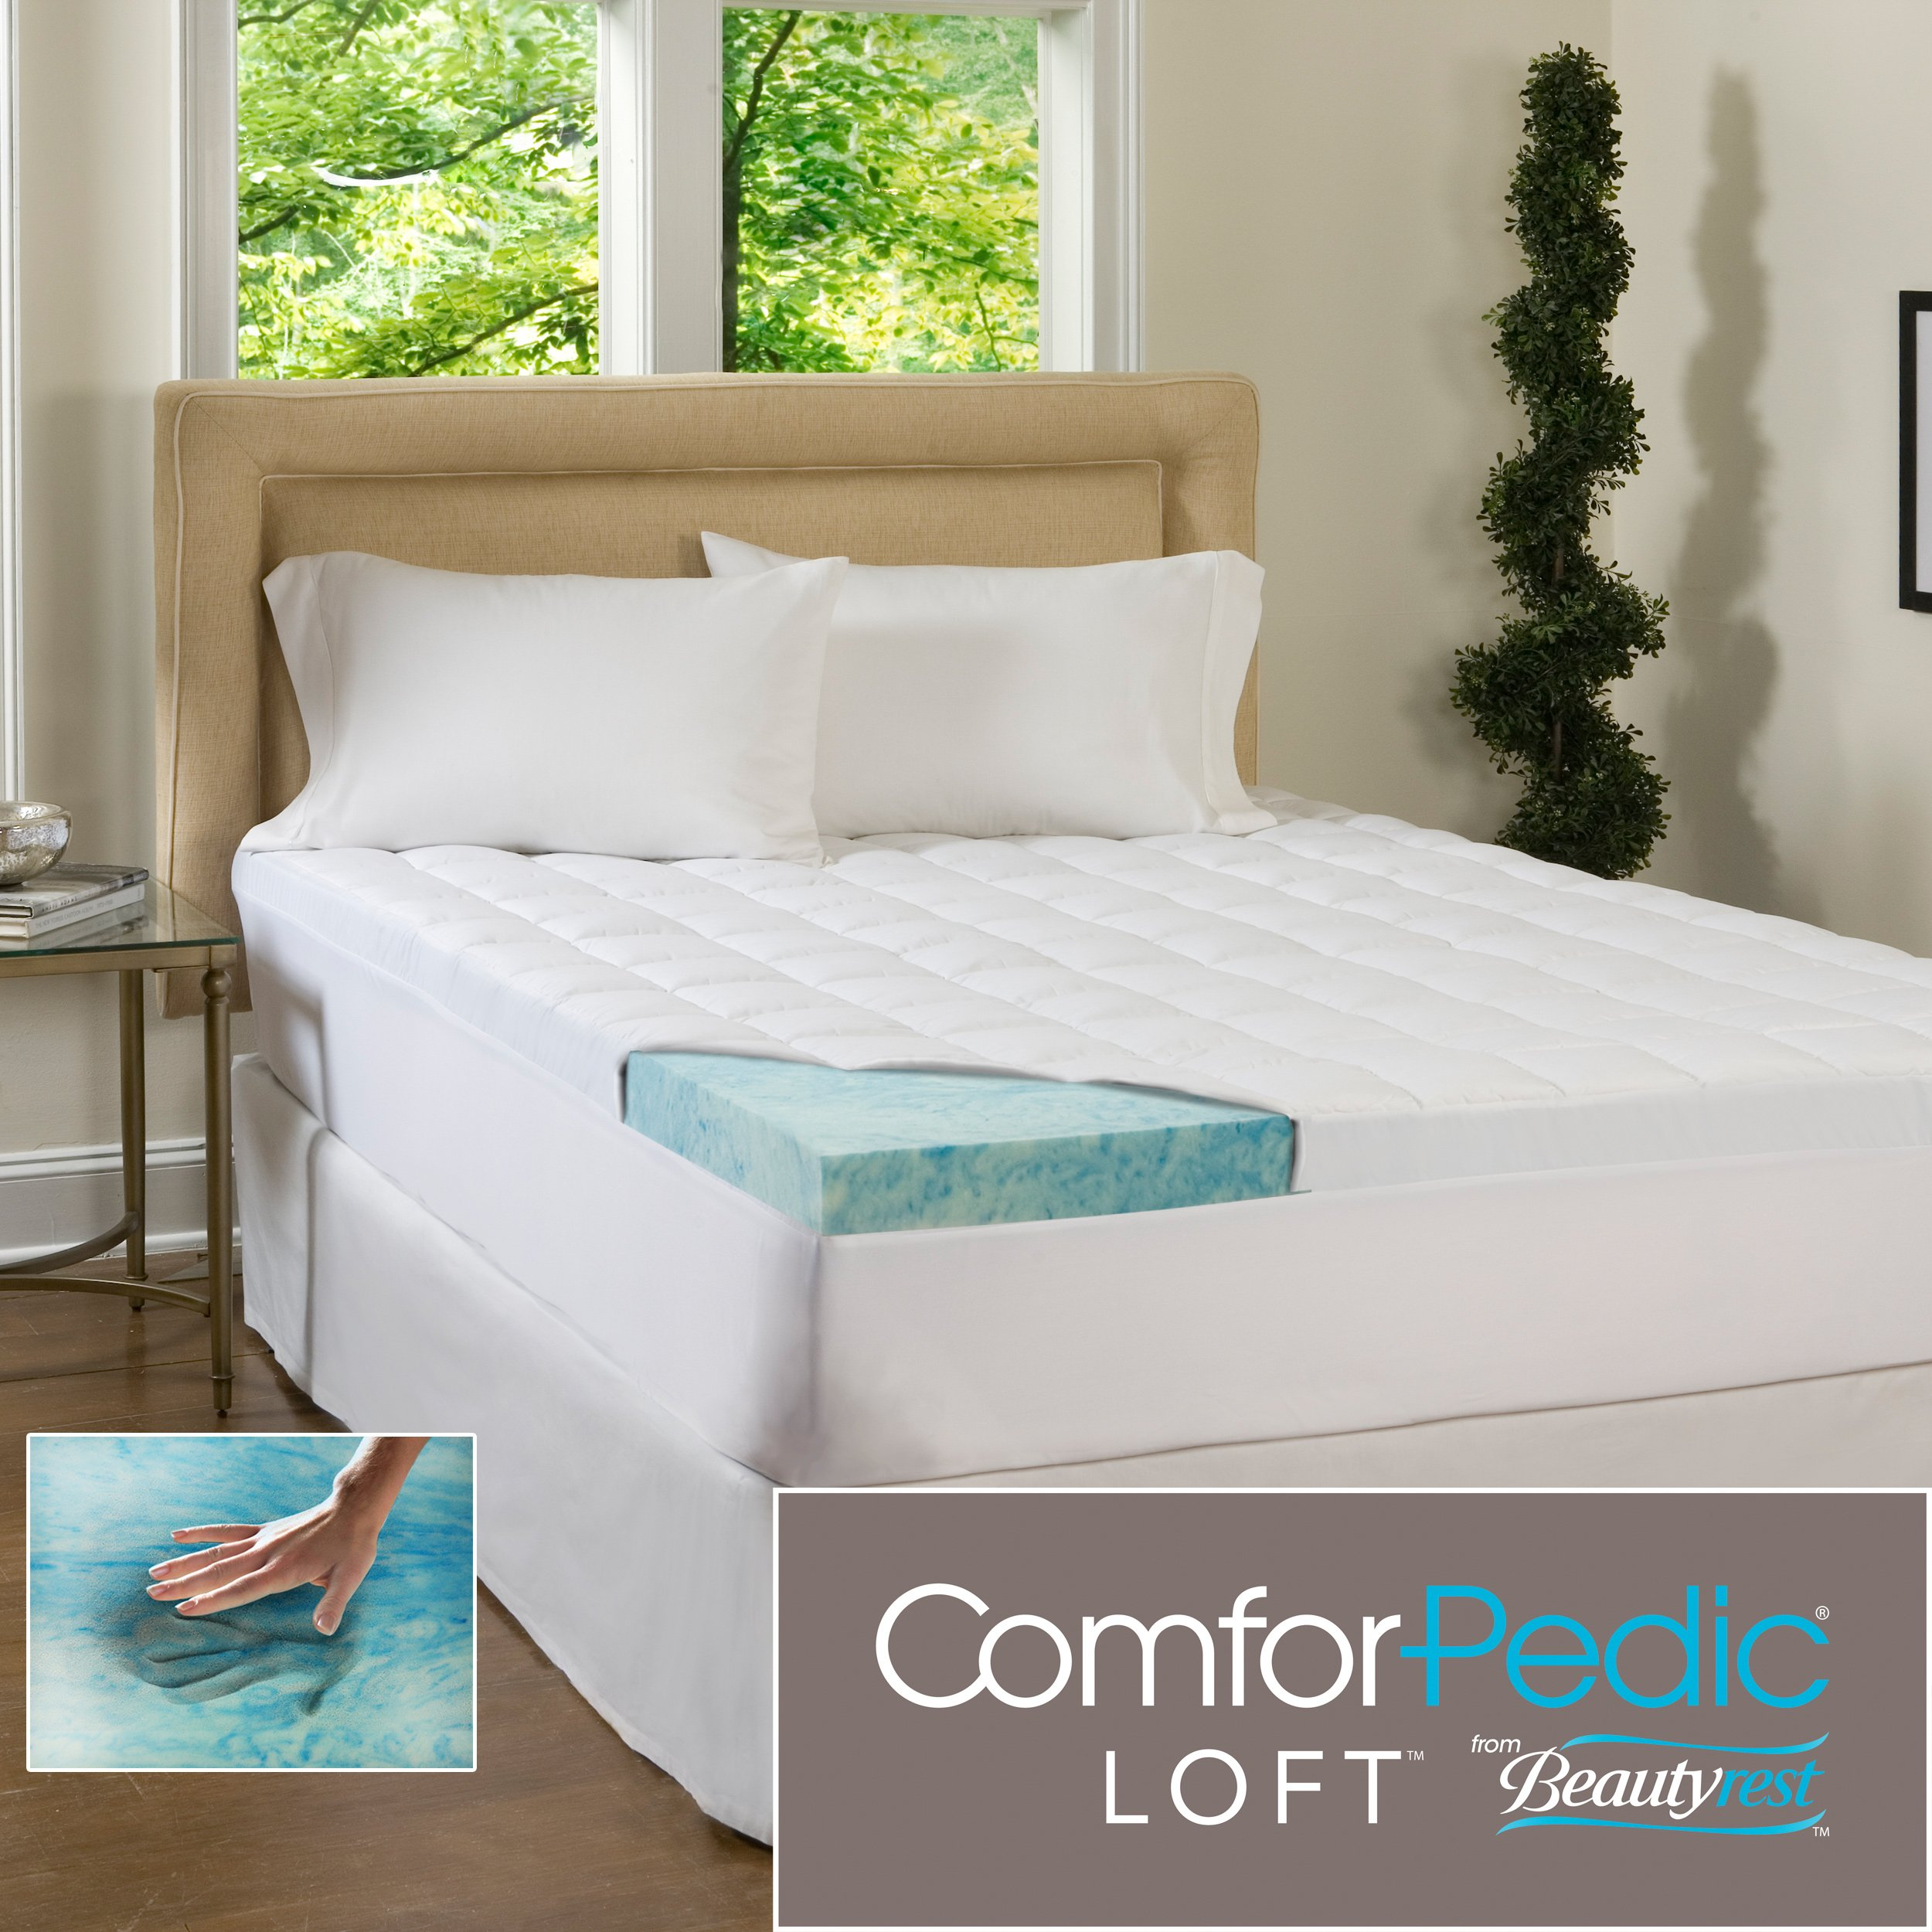 ComforPedic Loft Beautyrest 5.5-Inch Supreme Gel Memory Foam Topper for All Bed Sizes. Combining the 4-Inch Revolutionary Memory Foam Infused with Cool, Rejuvenating Gel Paired with a 1.5-Inch Fiber-Filled Cover Offers Luxurious Comfort and Support. (Quee